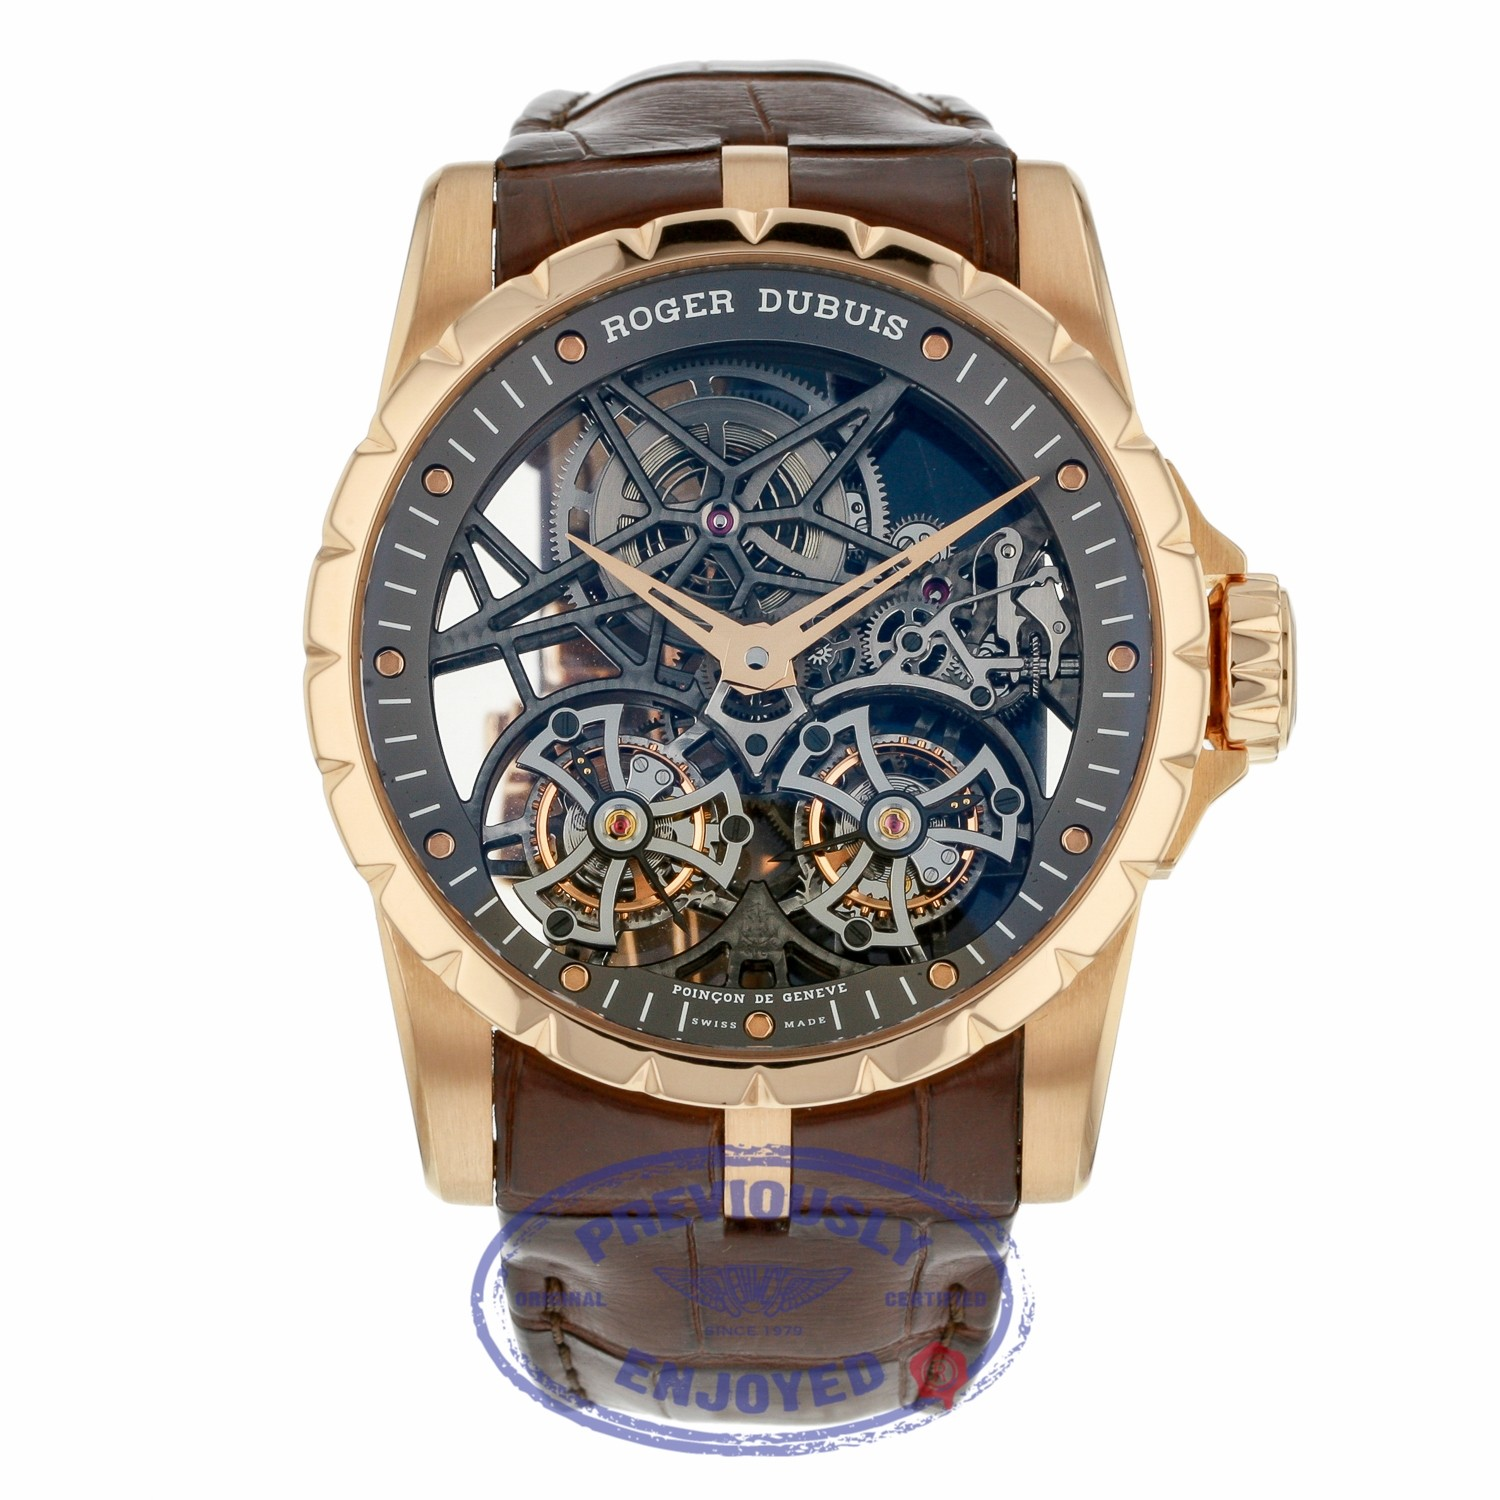 Roger Dubuis Double Tourbillon Rose Gold Skeleton Hand Wound Mechanical DBEX0395 P0VCY6 - Beverly Hills Watch